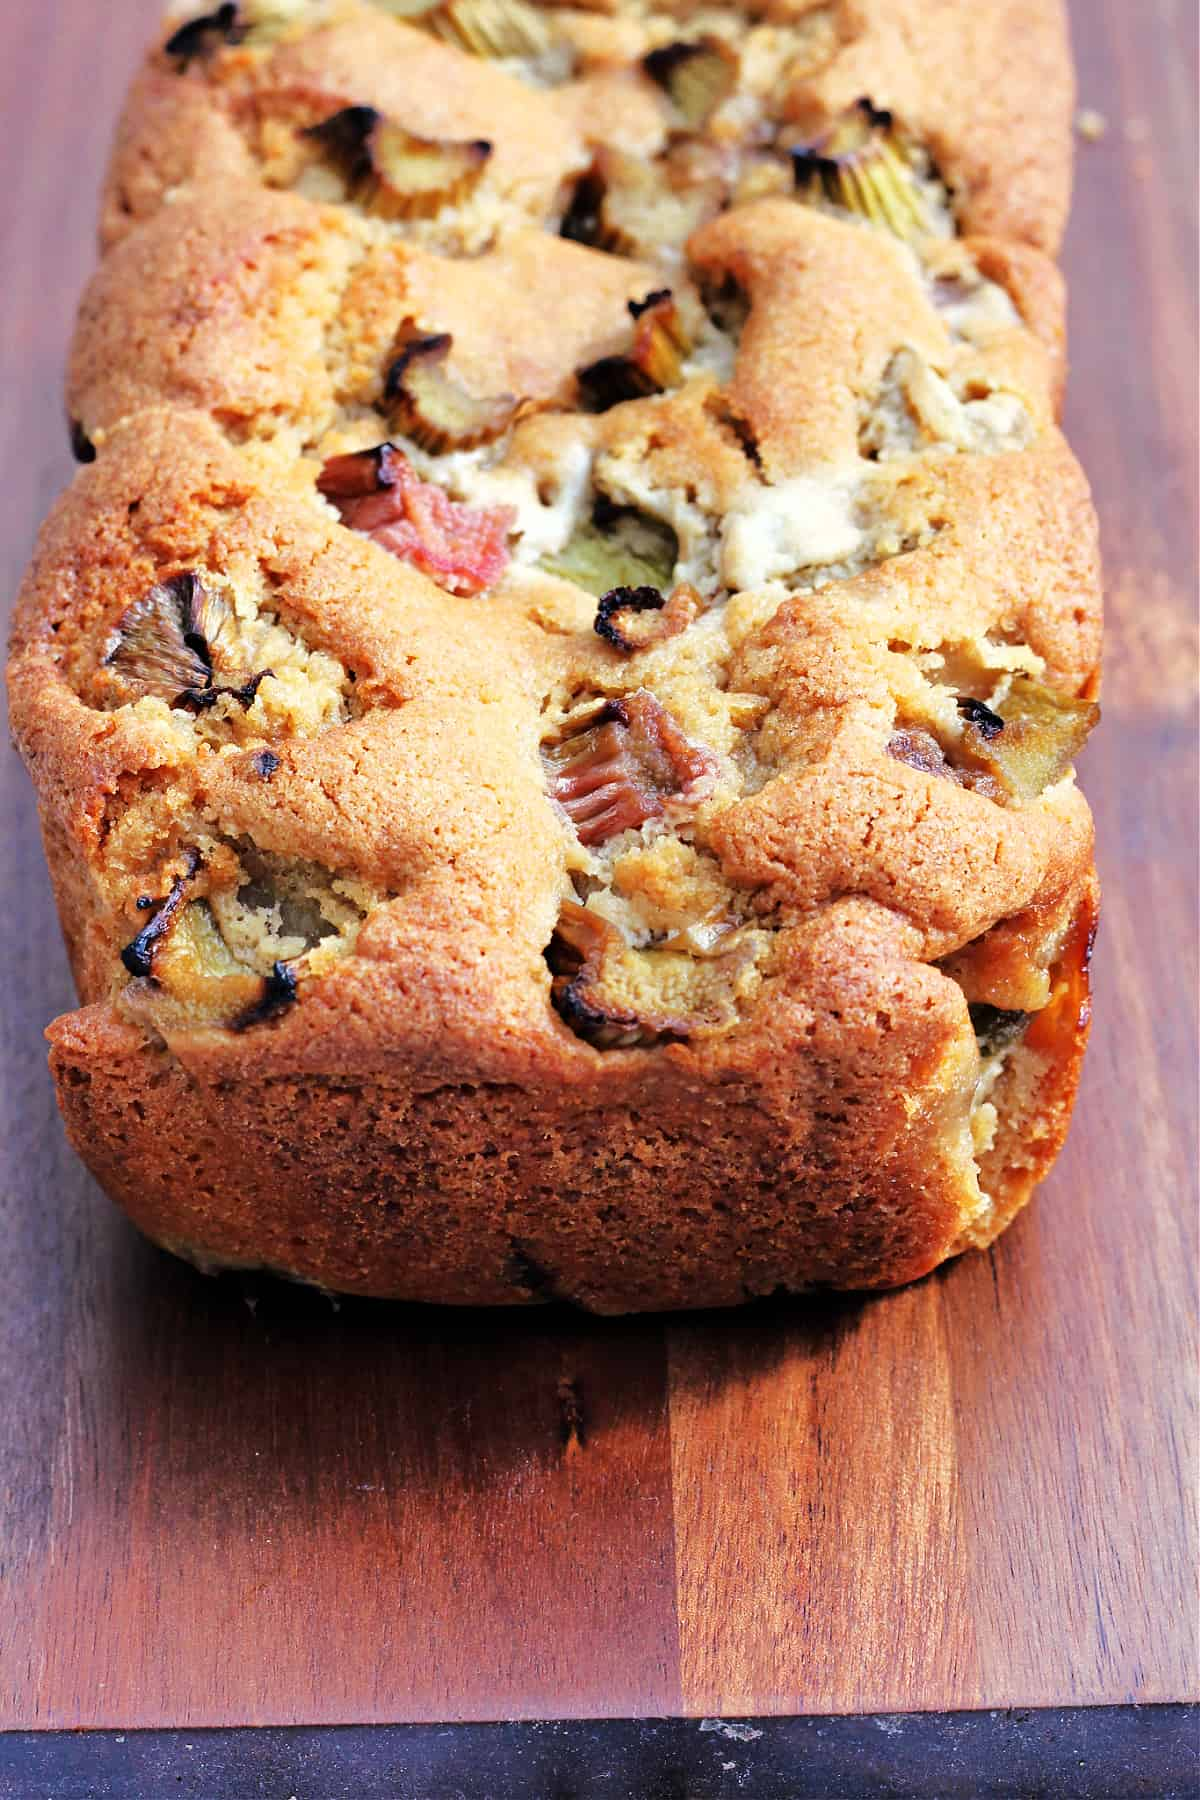 Close up of a fruit filled loaf cake on a wooden board.